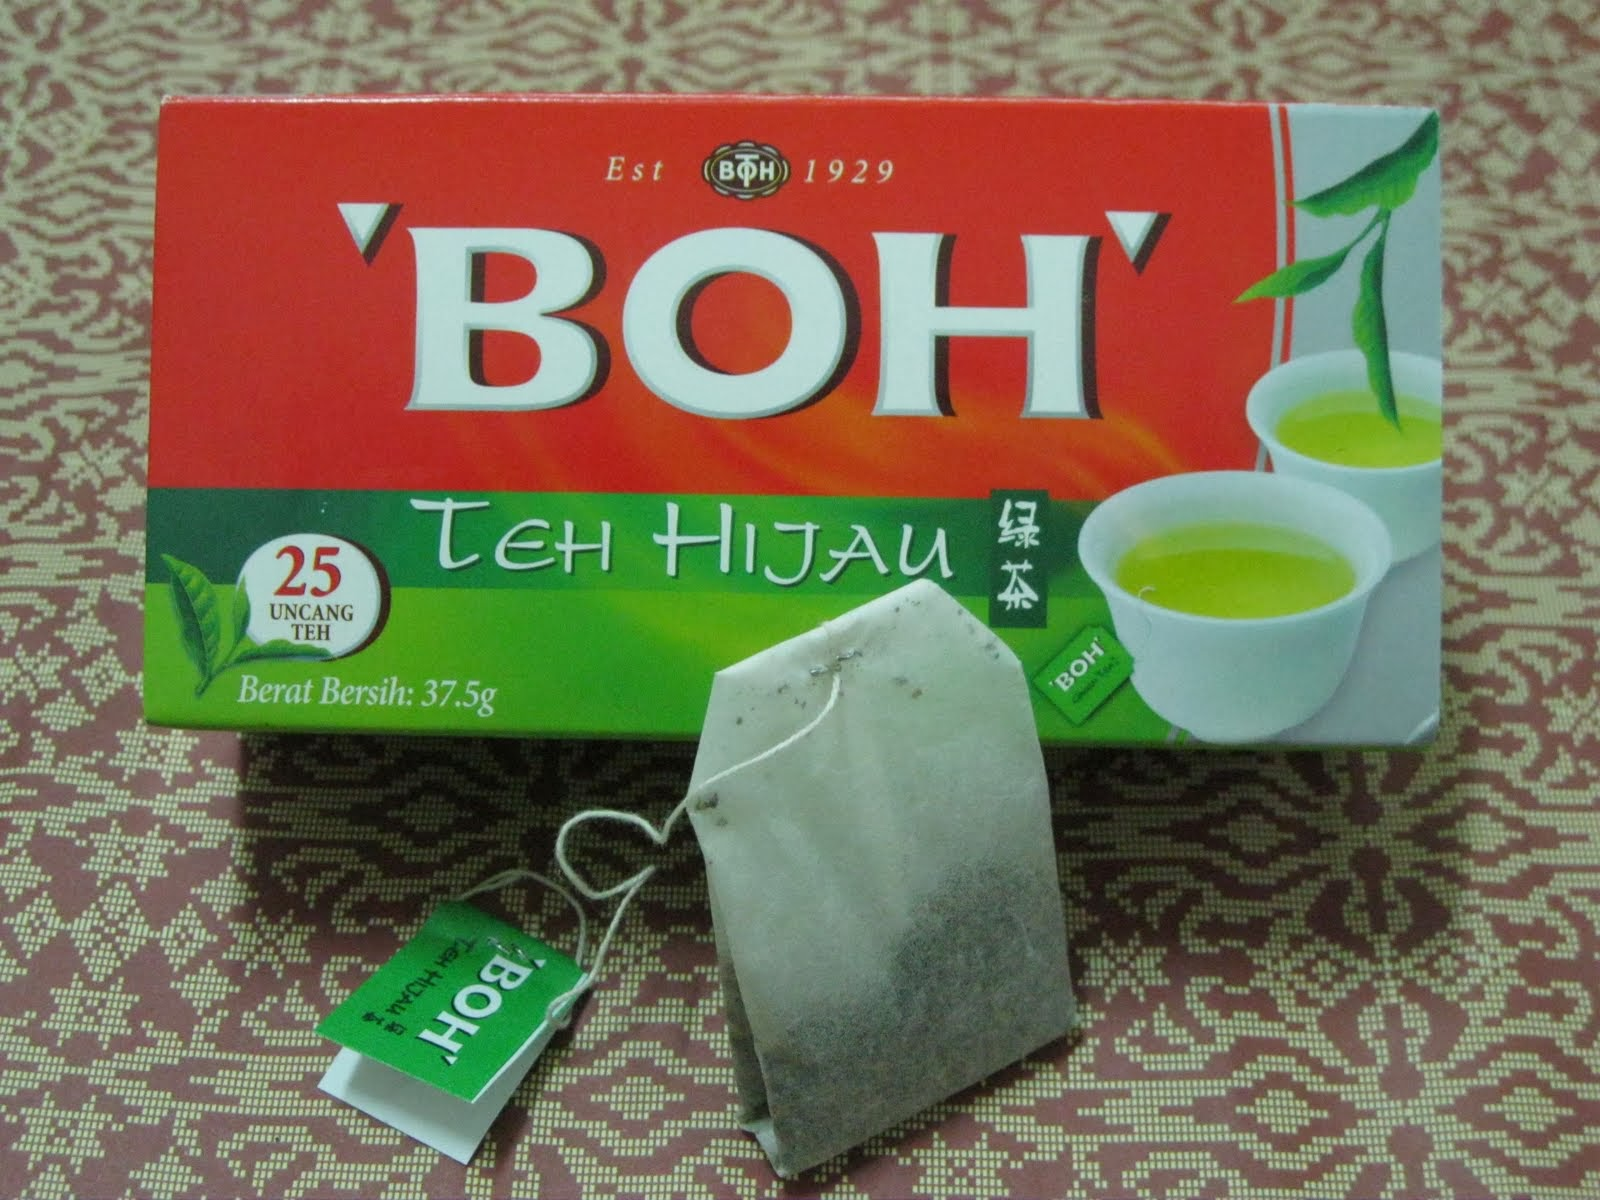 Cara minum green coffee biji,are graham crackers bad for weight loss